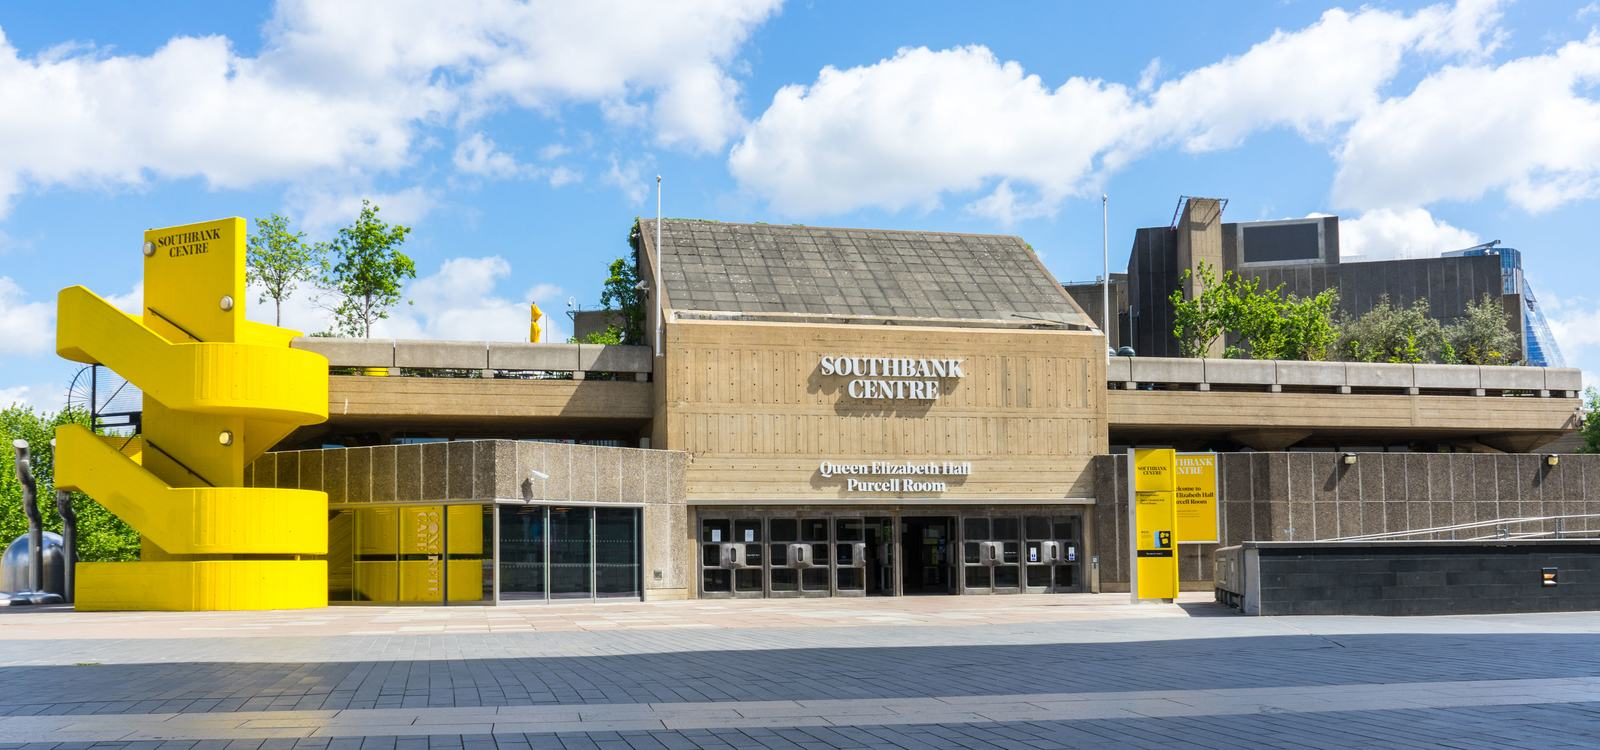 - The Southbank Centre is the UK's largest arts centre and one of the UK's top five visitor attractions, occupying a 17 acre site that sits in the midst of London's most vibrant cultural quarter on the South Bank of the Thames.